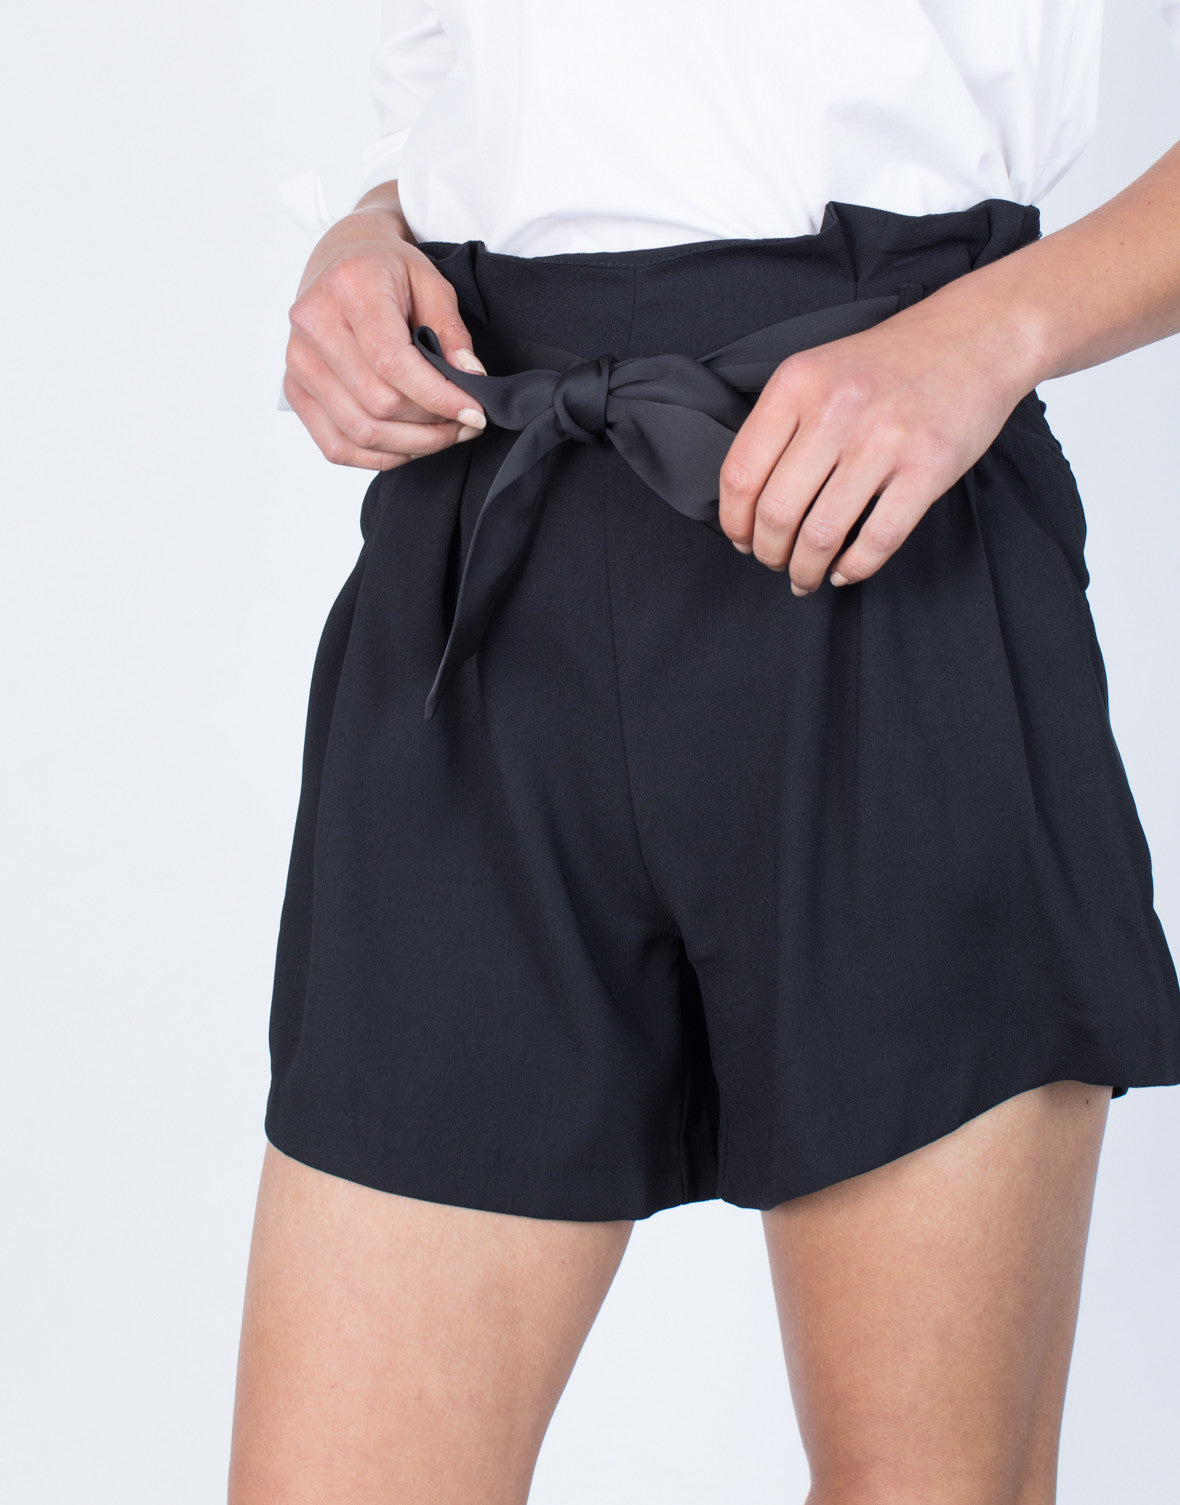 Detail of Chanel Waist Tied Shorts